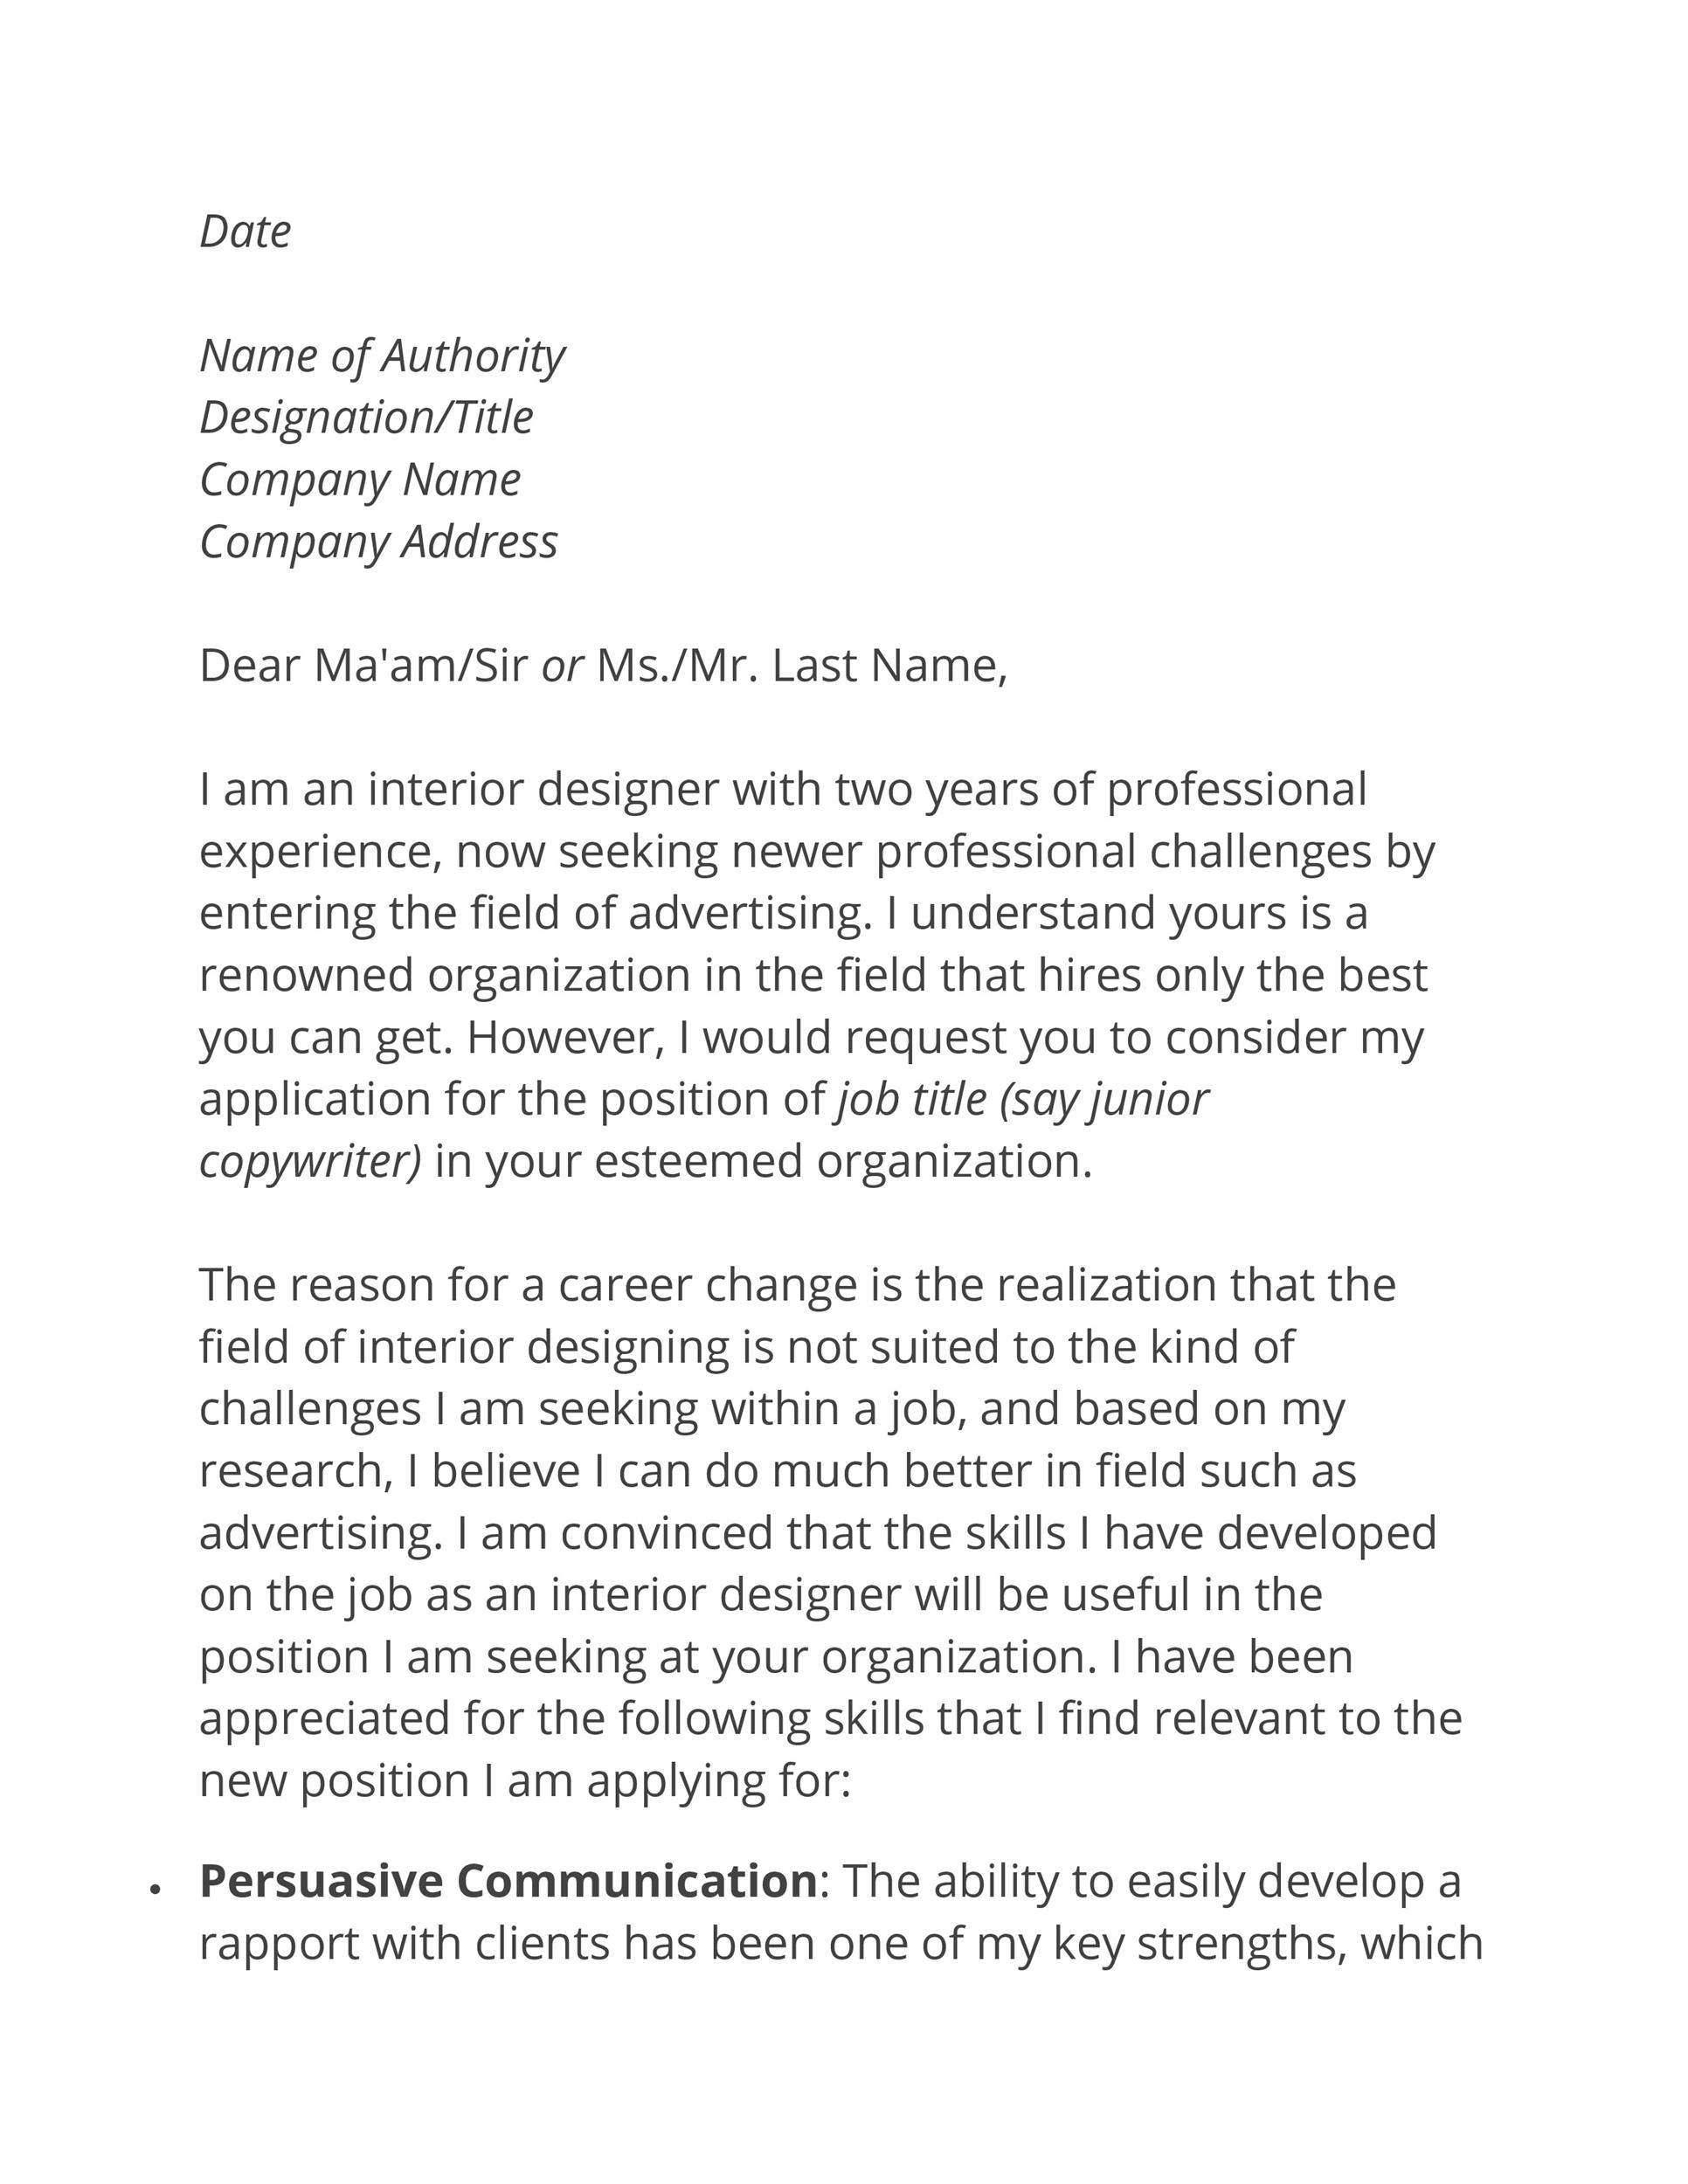 Change Of Career Covering Letter from templatelab.com